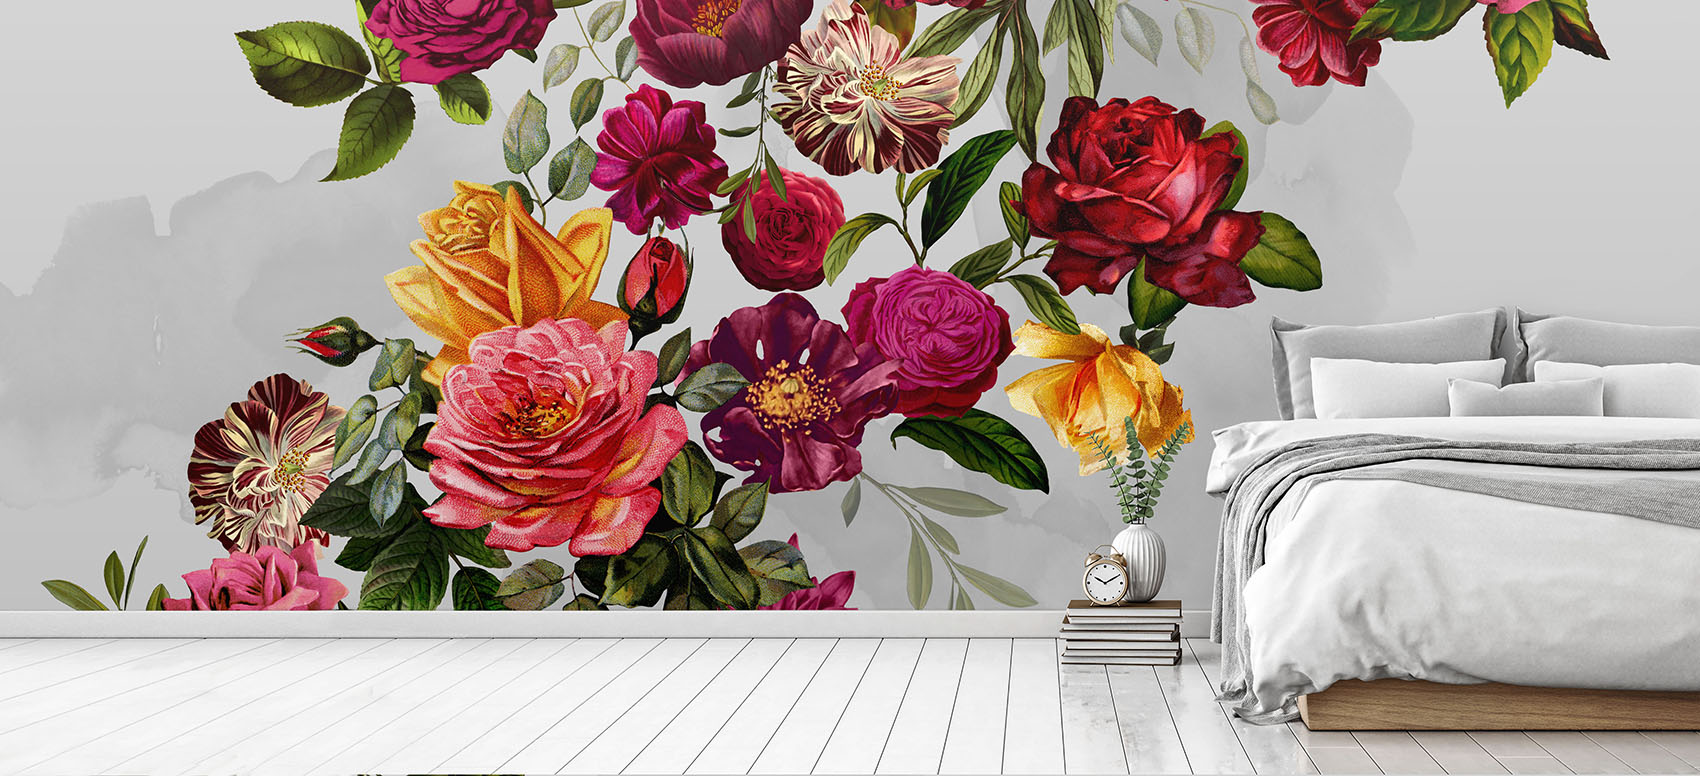 Velvet Roses Bedroom Wallpaper